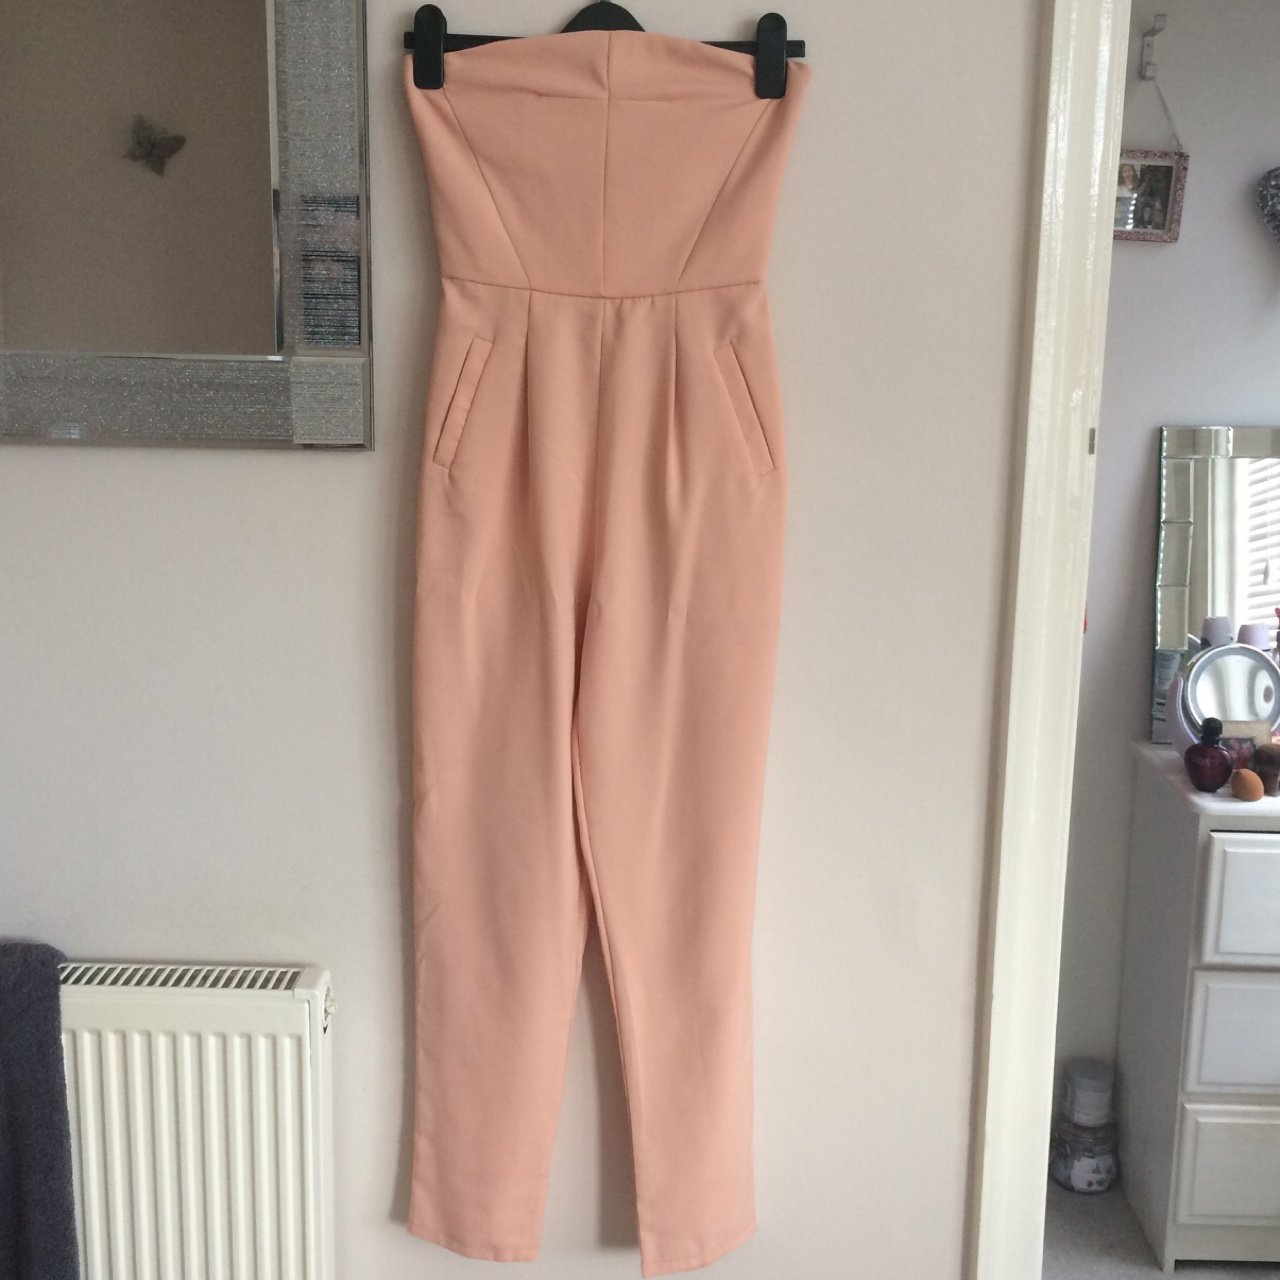 c3ed4446be8 Pink Missguided jumpsuit. Creased from